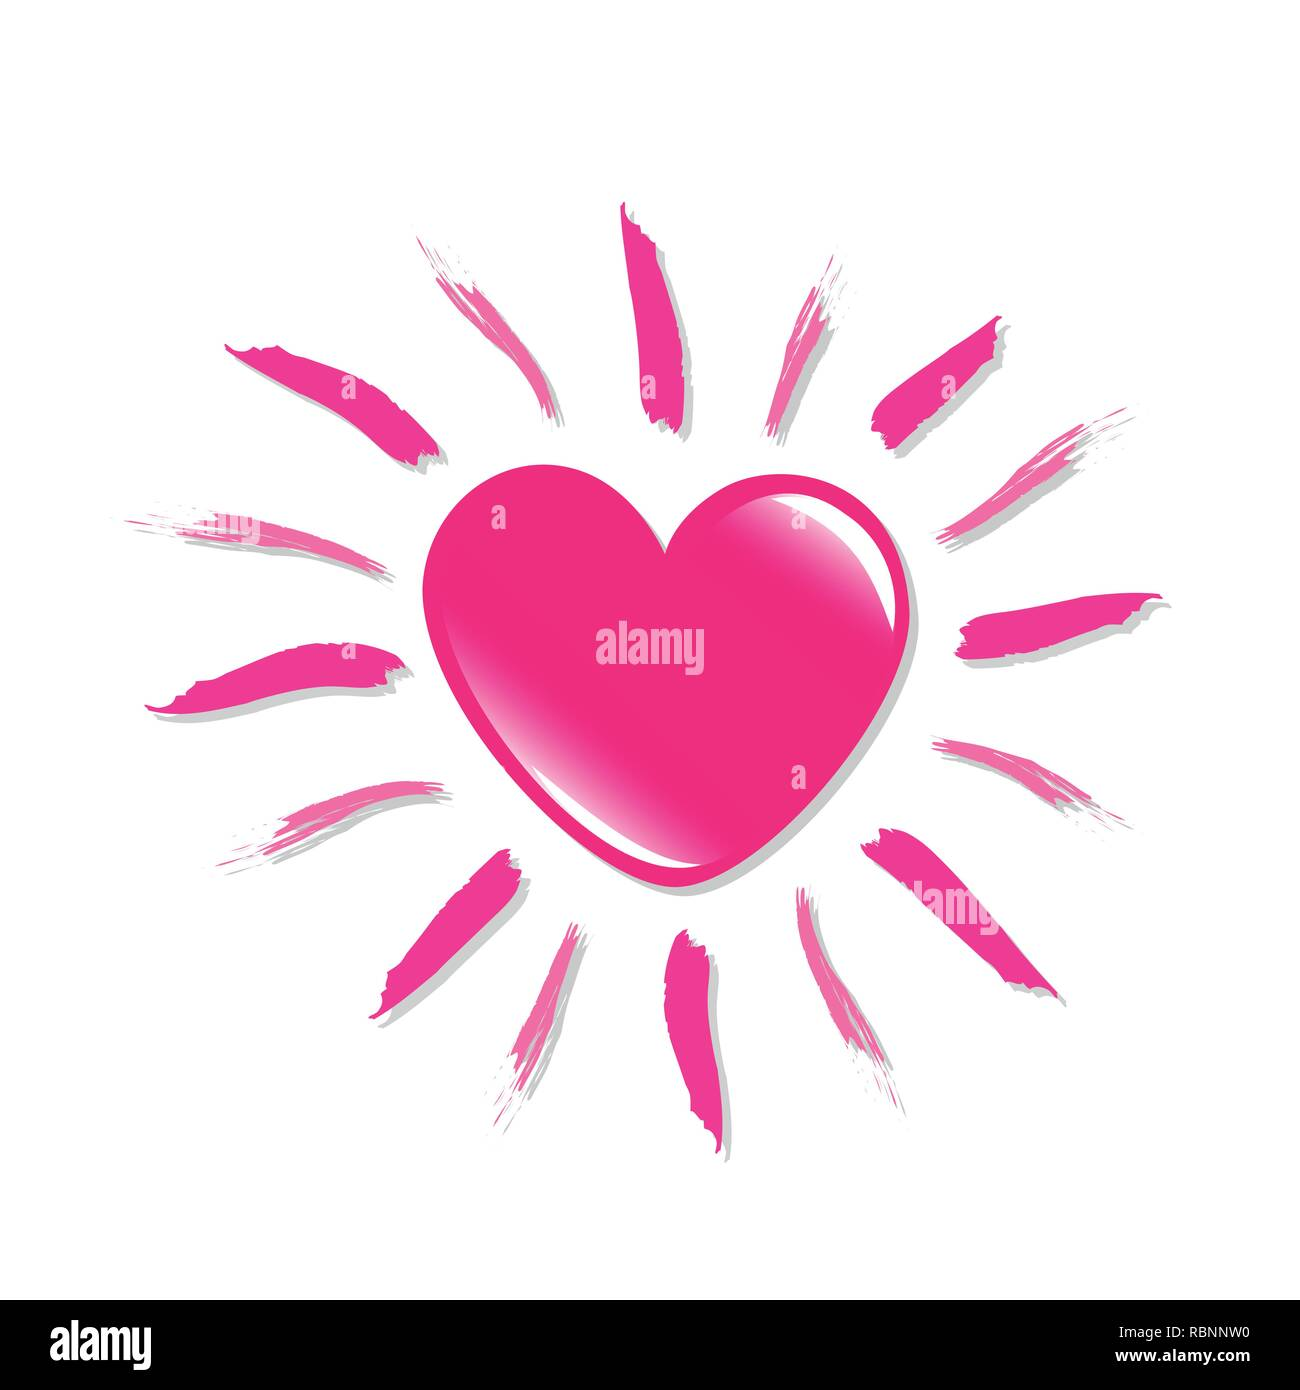 pink heart shaped sun isolated on white backgound vector illustraton EPS10 - Stock Image